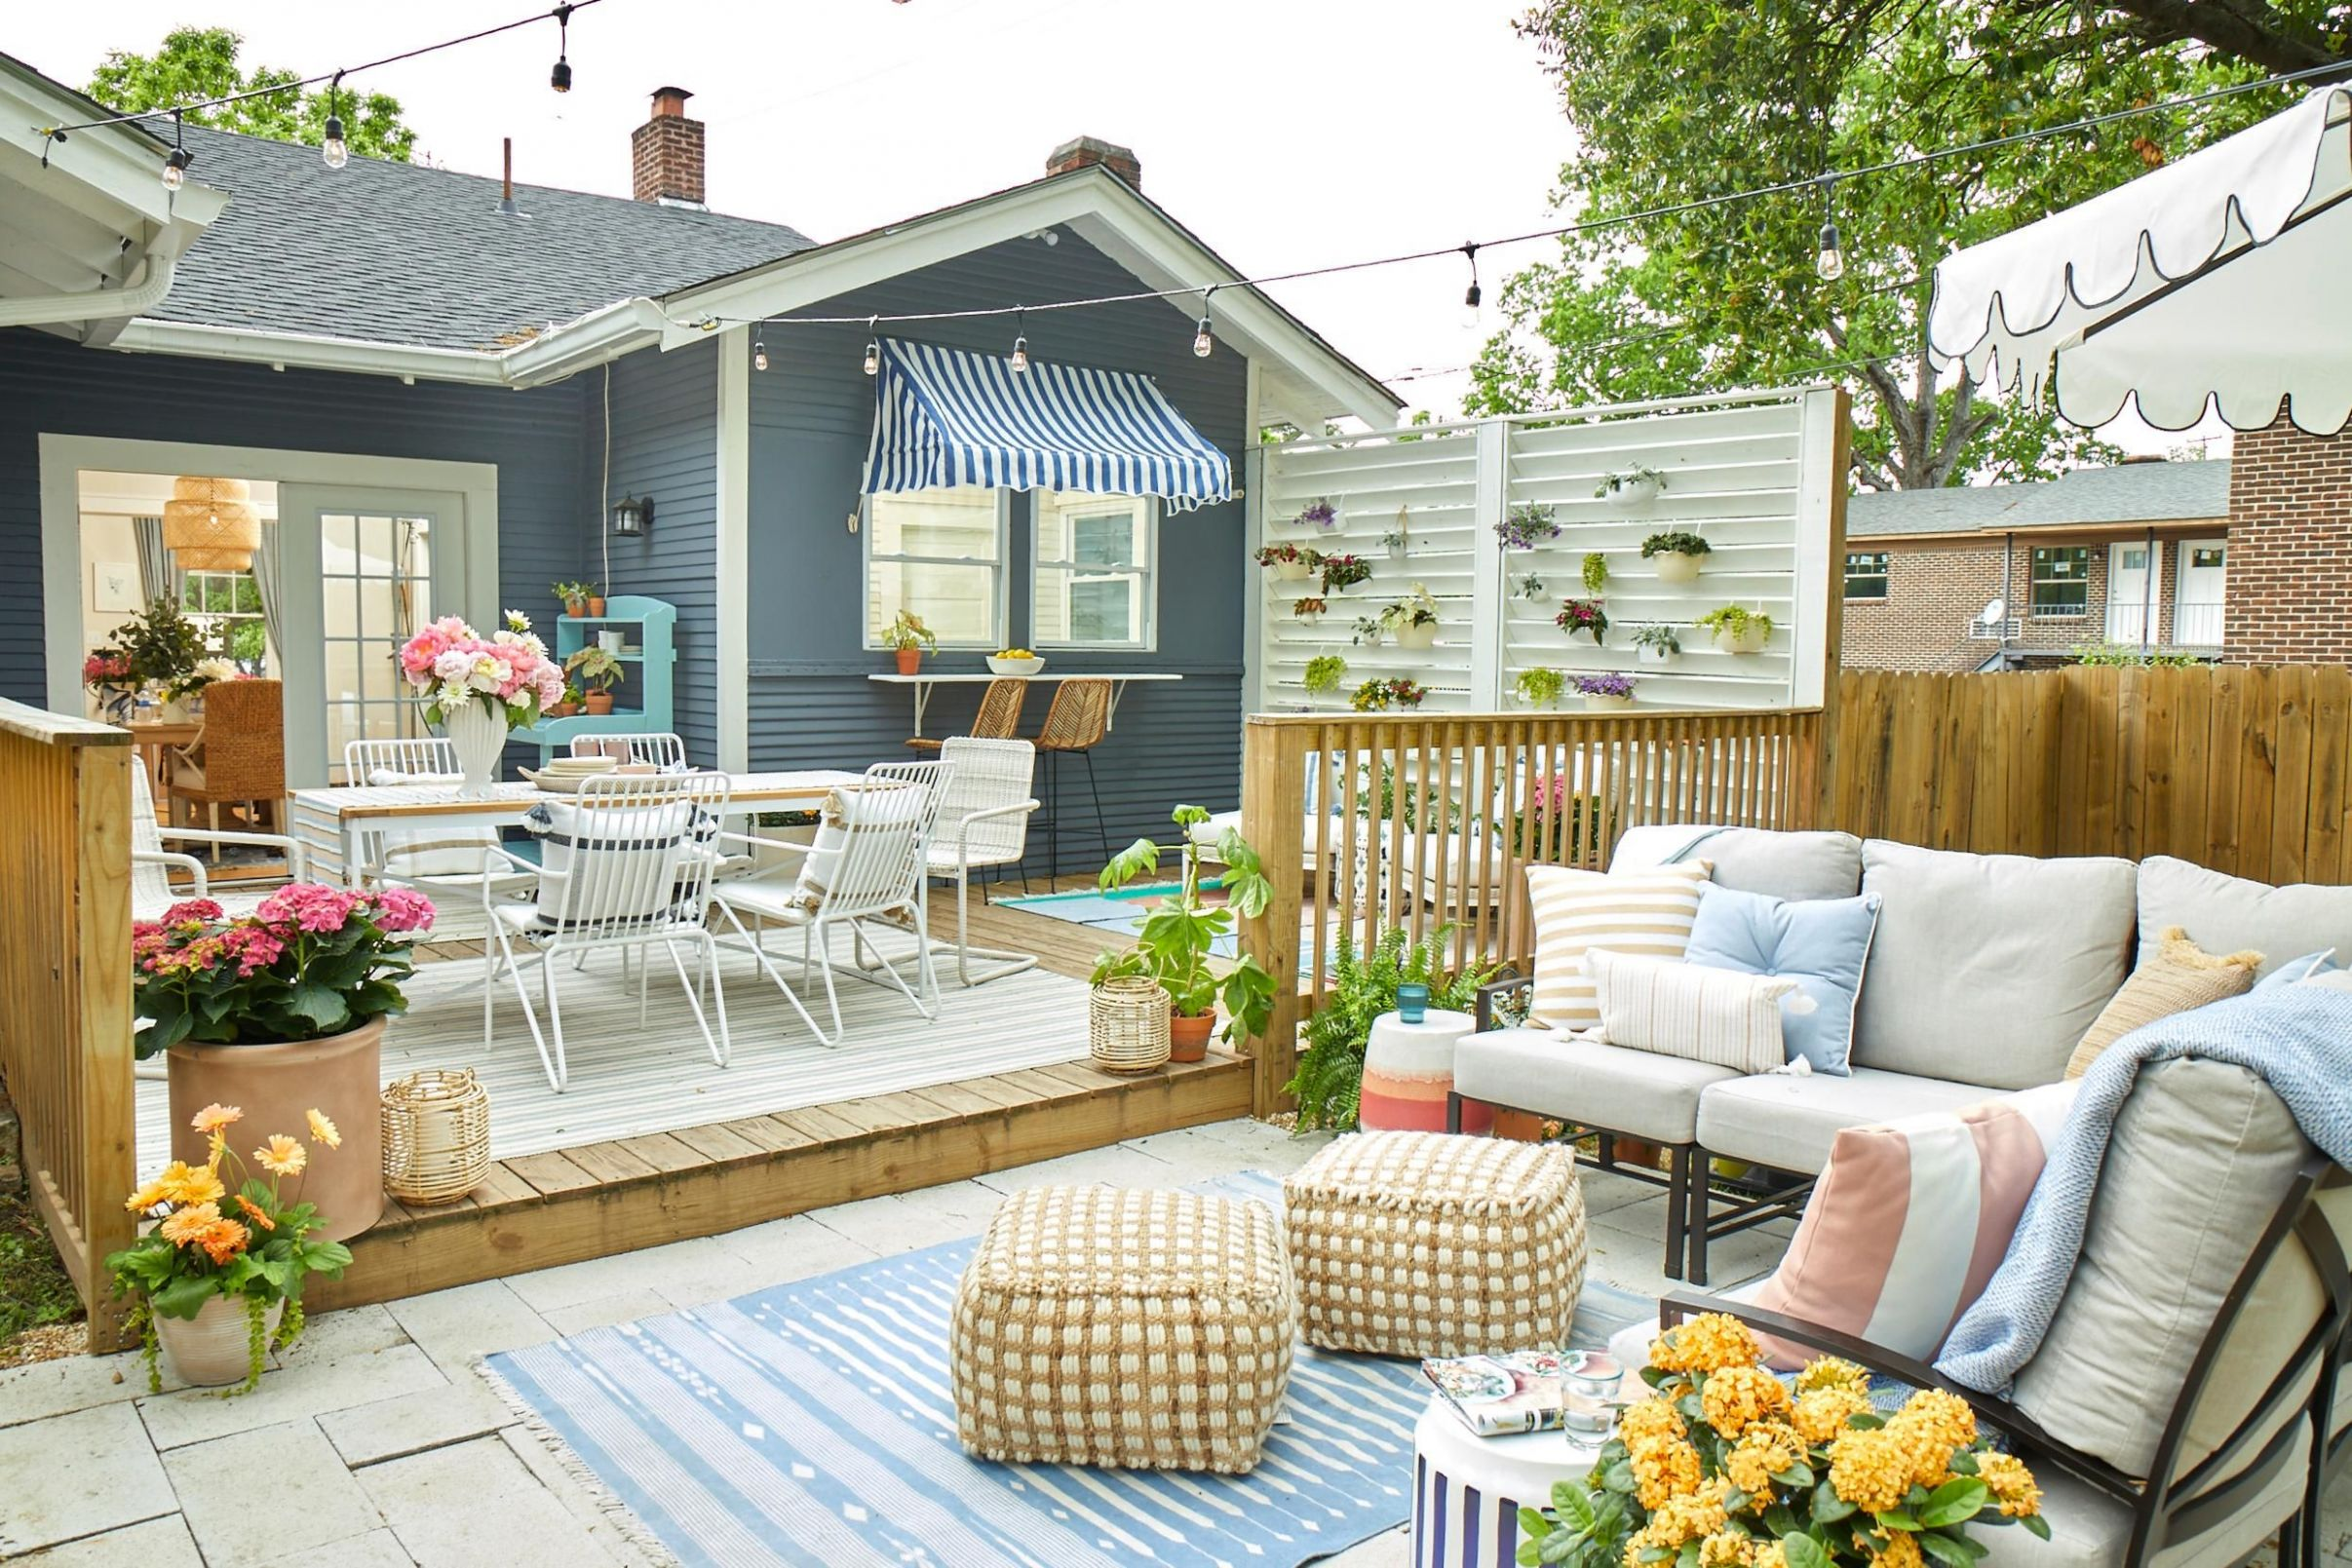 9 Best Patio and Porch Design Ideas - Decorating Your Outdoor Space - balcony ideas stone